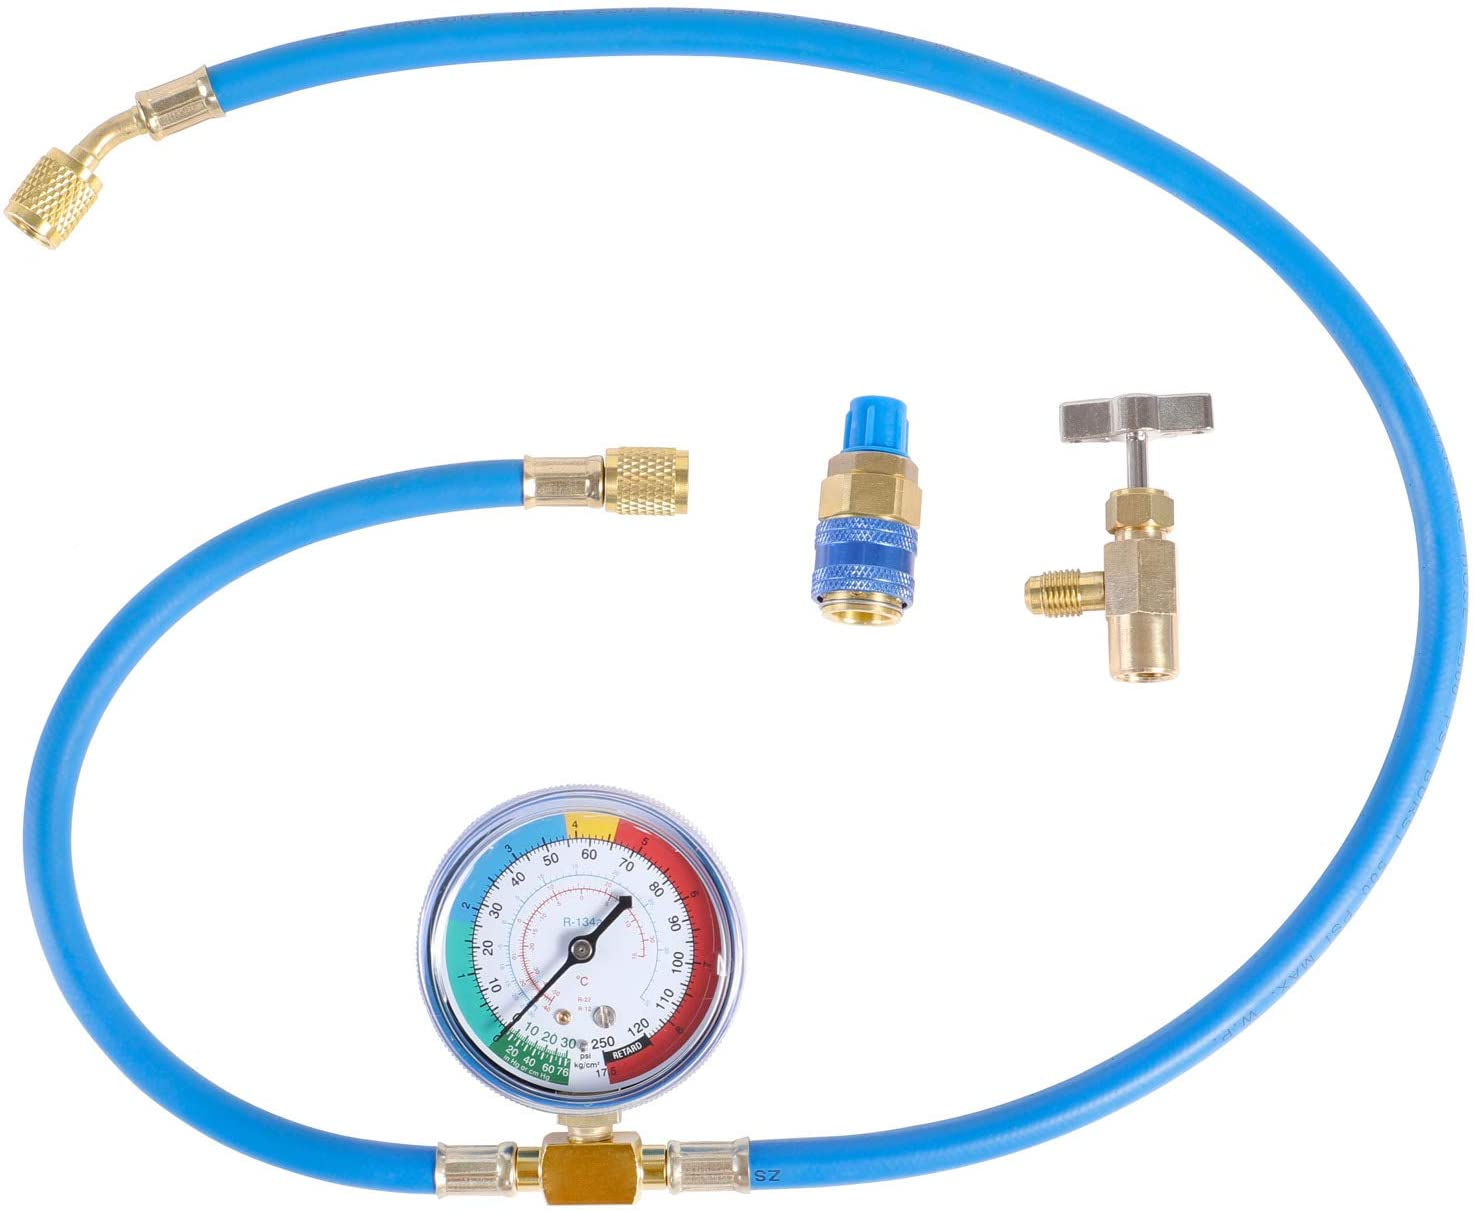 """JIFETOR AC Charge Hose with Gauge for R134A R12 R22, Car HVAC Refrigerant Recharge Kit, Home Air Conditioning U Charging Hose Low Pressure Measuring Meter 1/4"""" Fittings Can Tap Quick Coupler, 42"""" Long"""